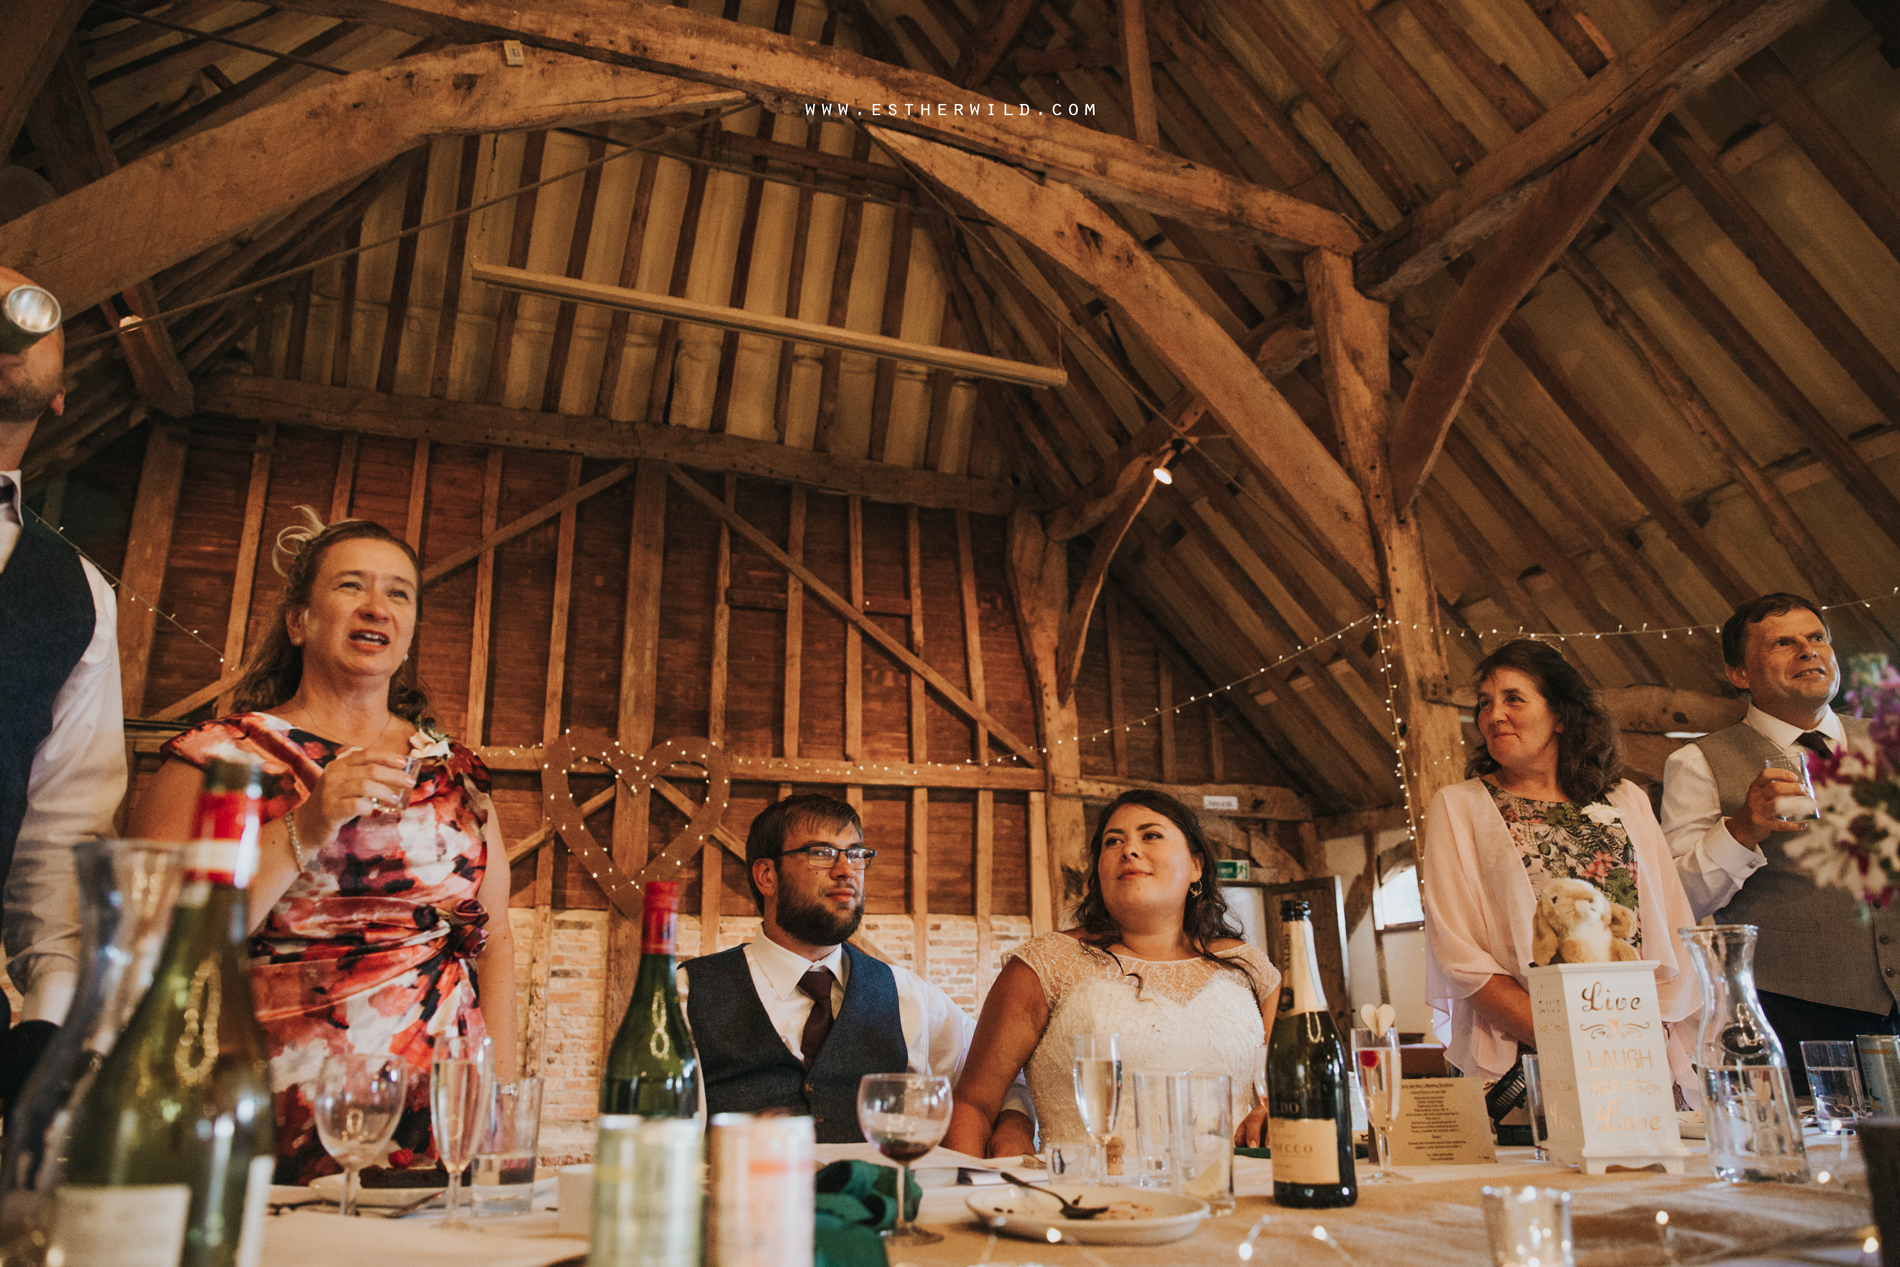 The_Red_Barn_Wedding_Kings_Lynn_Norfolk_IMG_2245.jpg